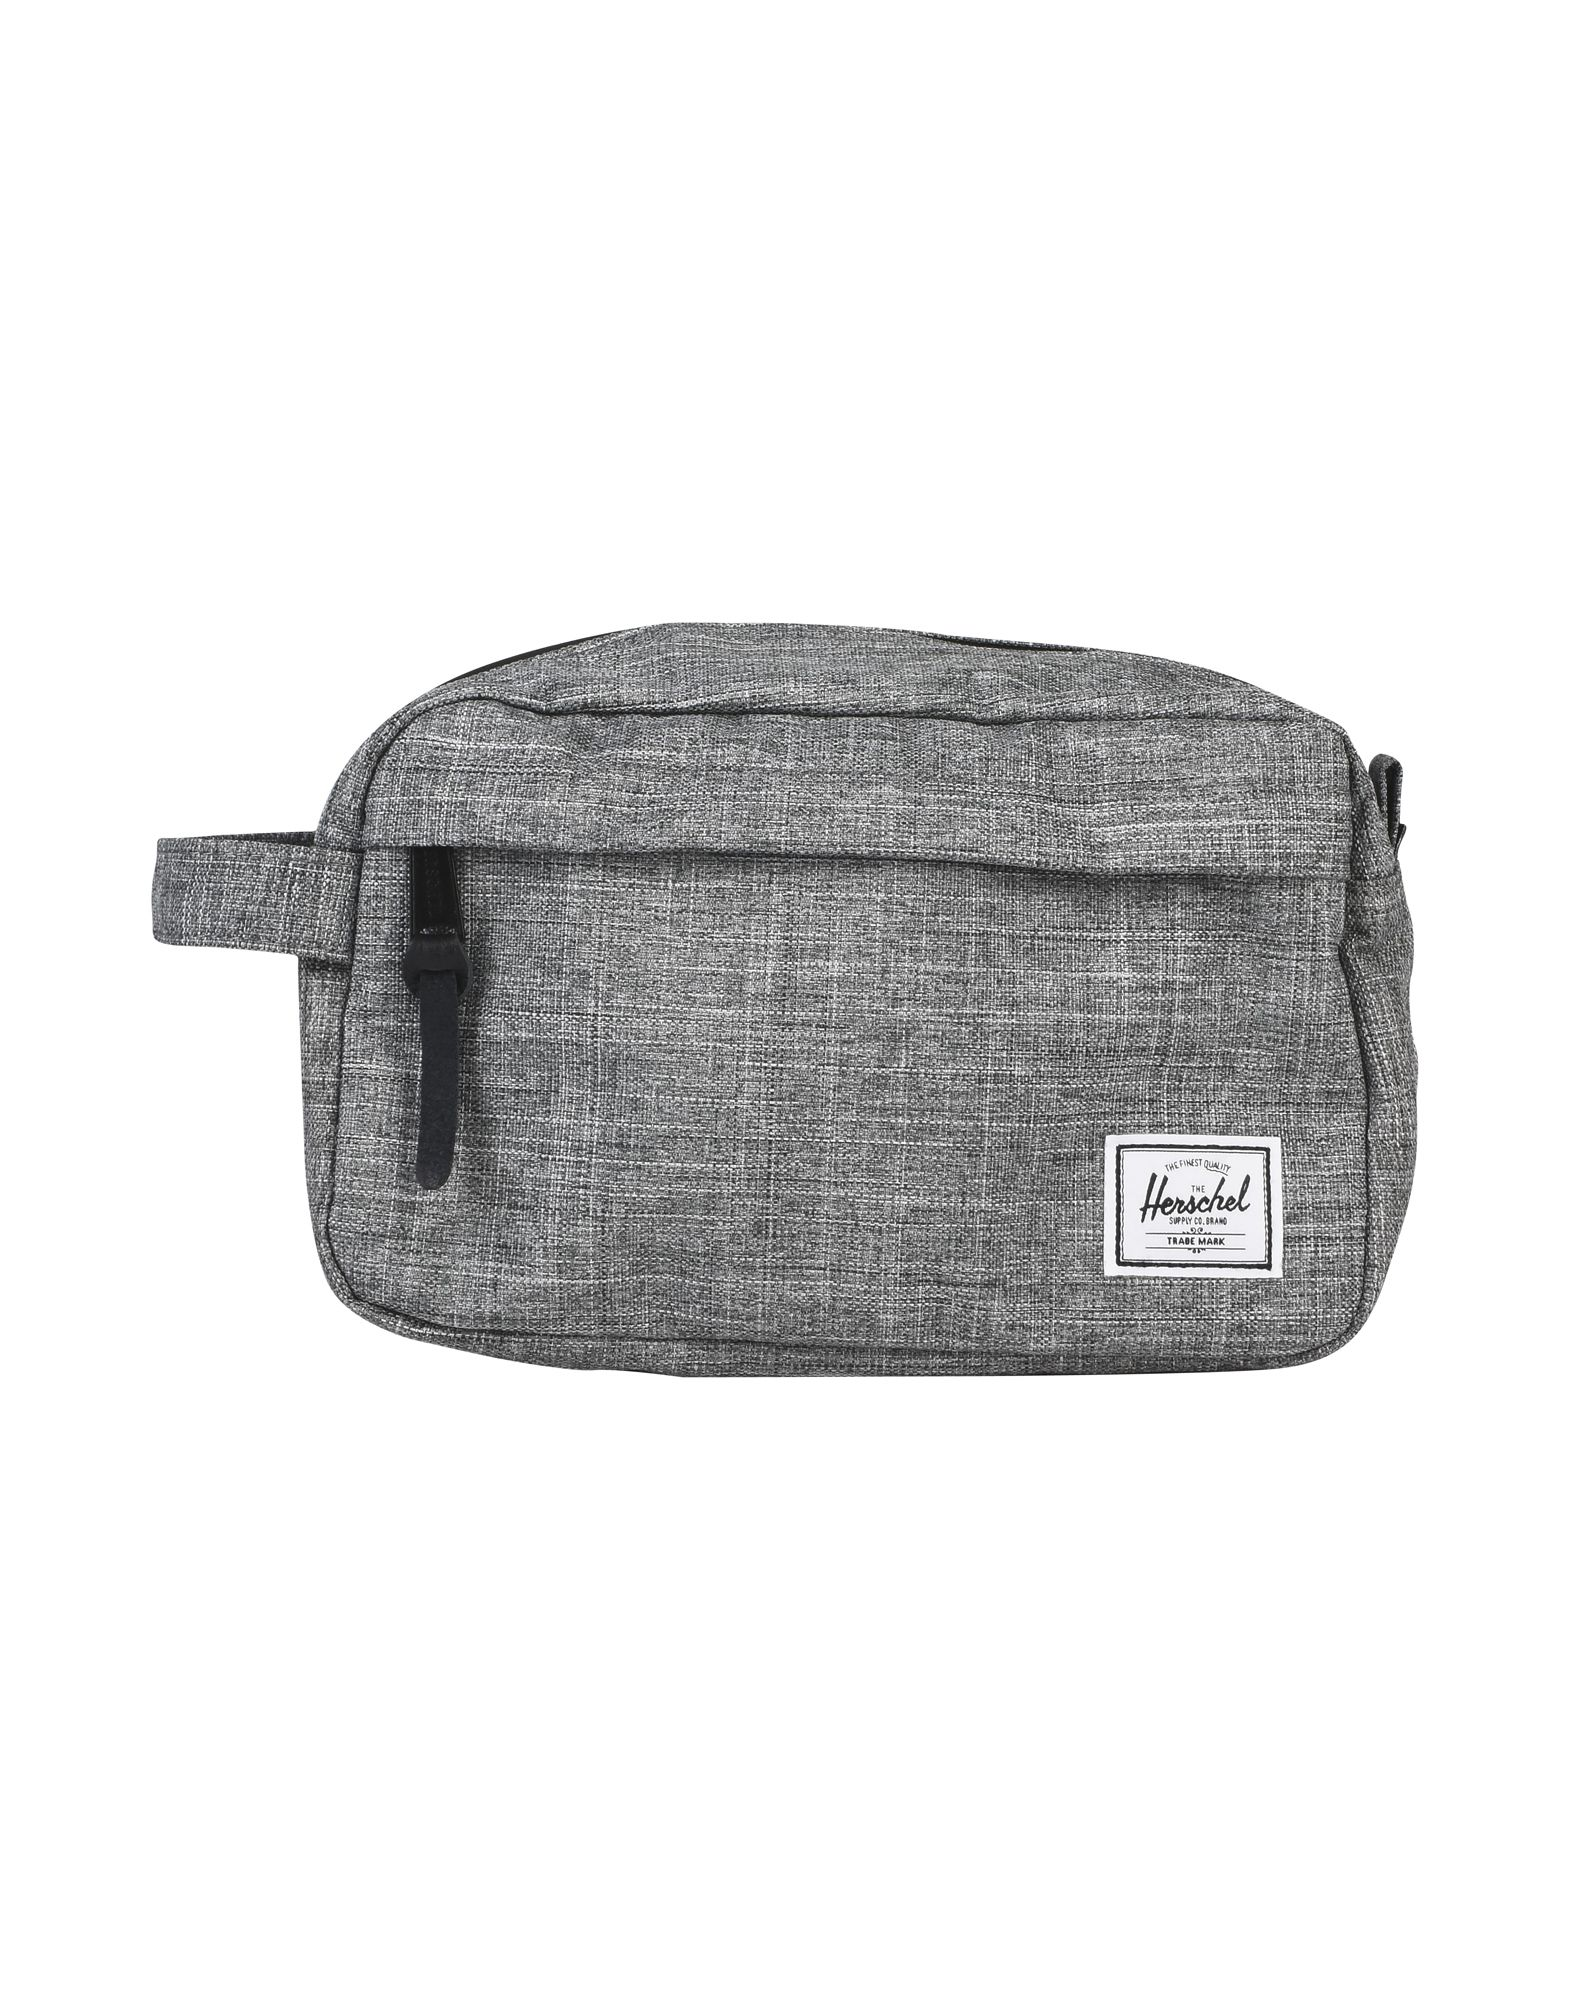 HERSCHEL SUPPLY CO. Beauty case